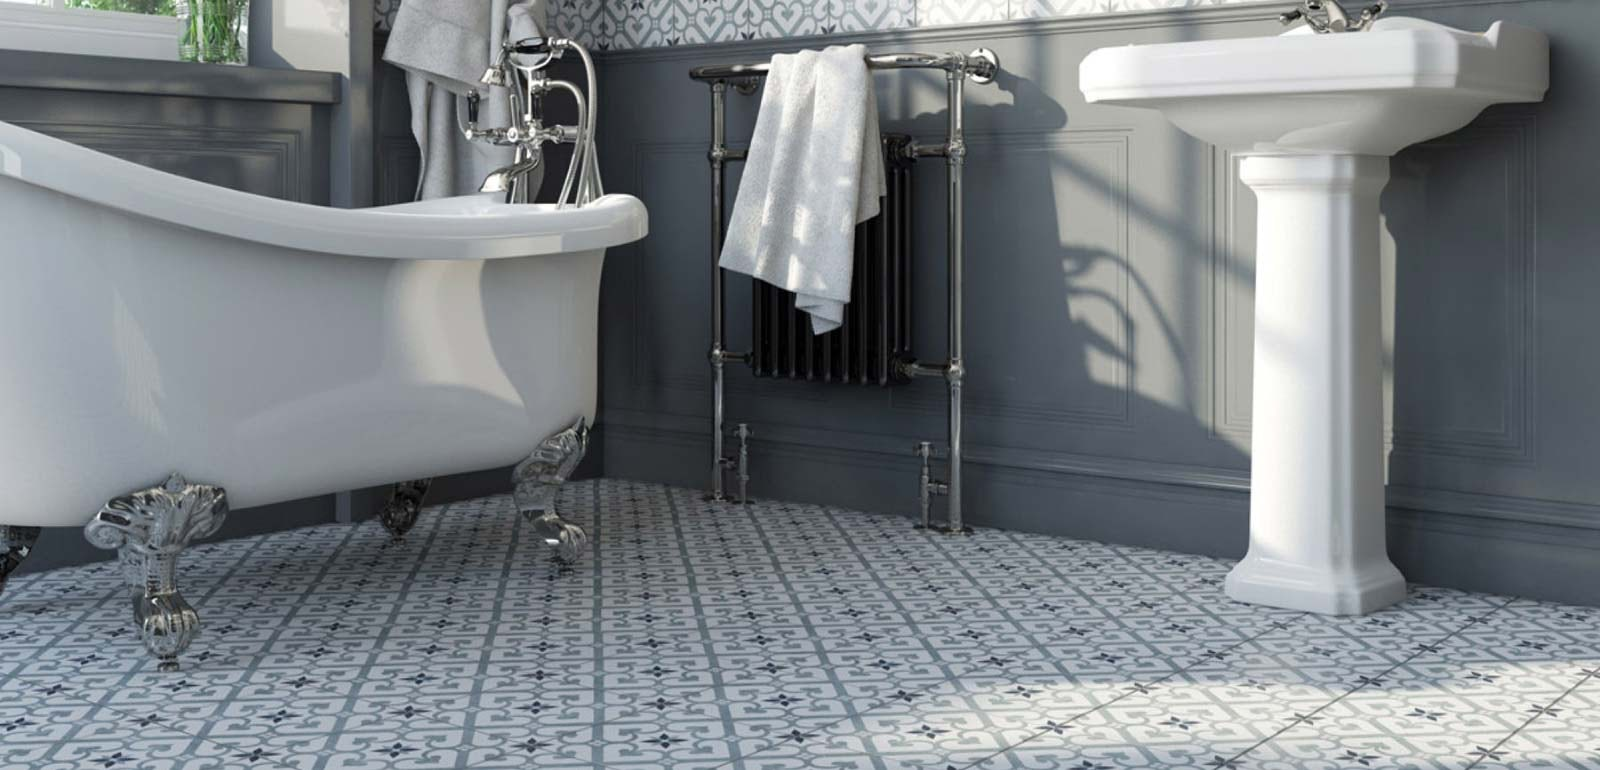 Stylist's Selection: 9 stylish wall and floor ideas for bathrooms